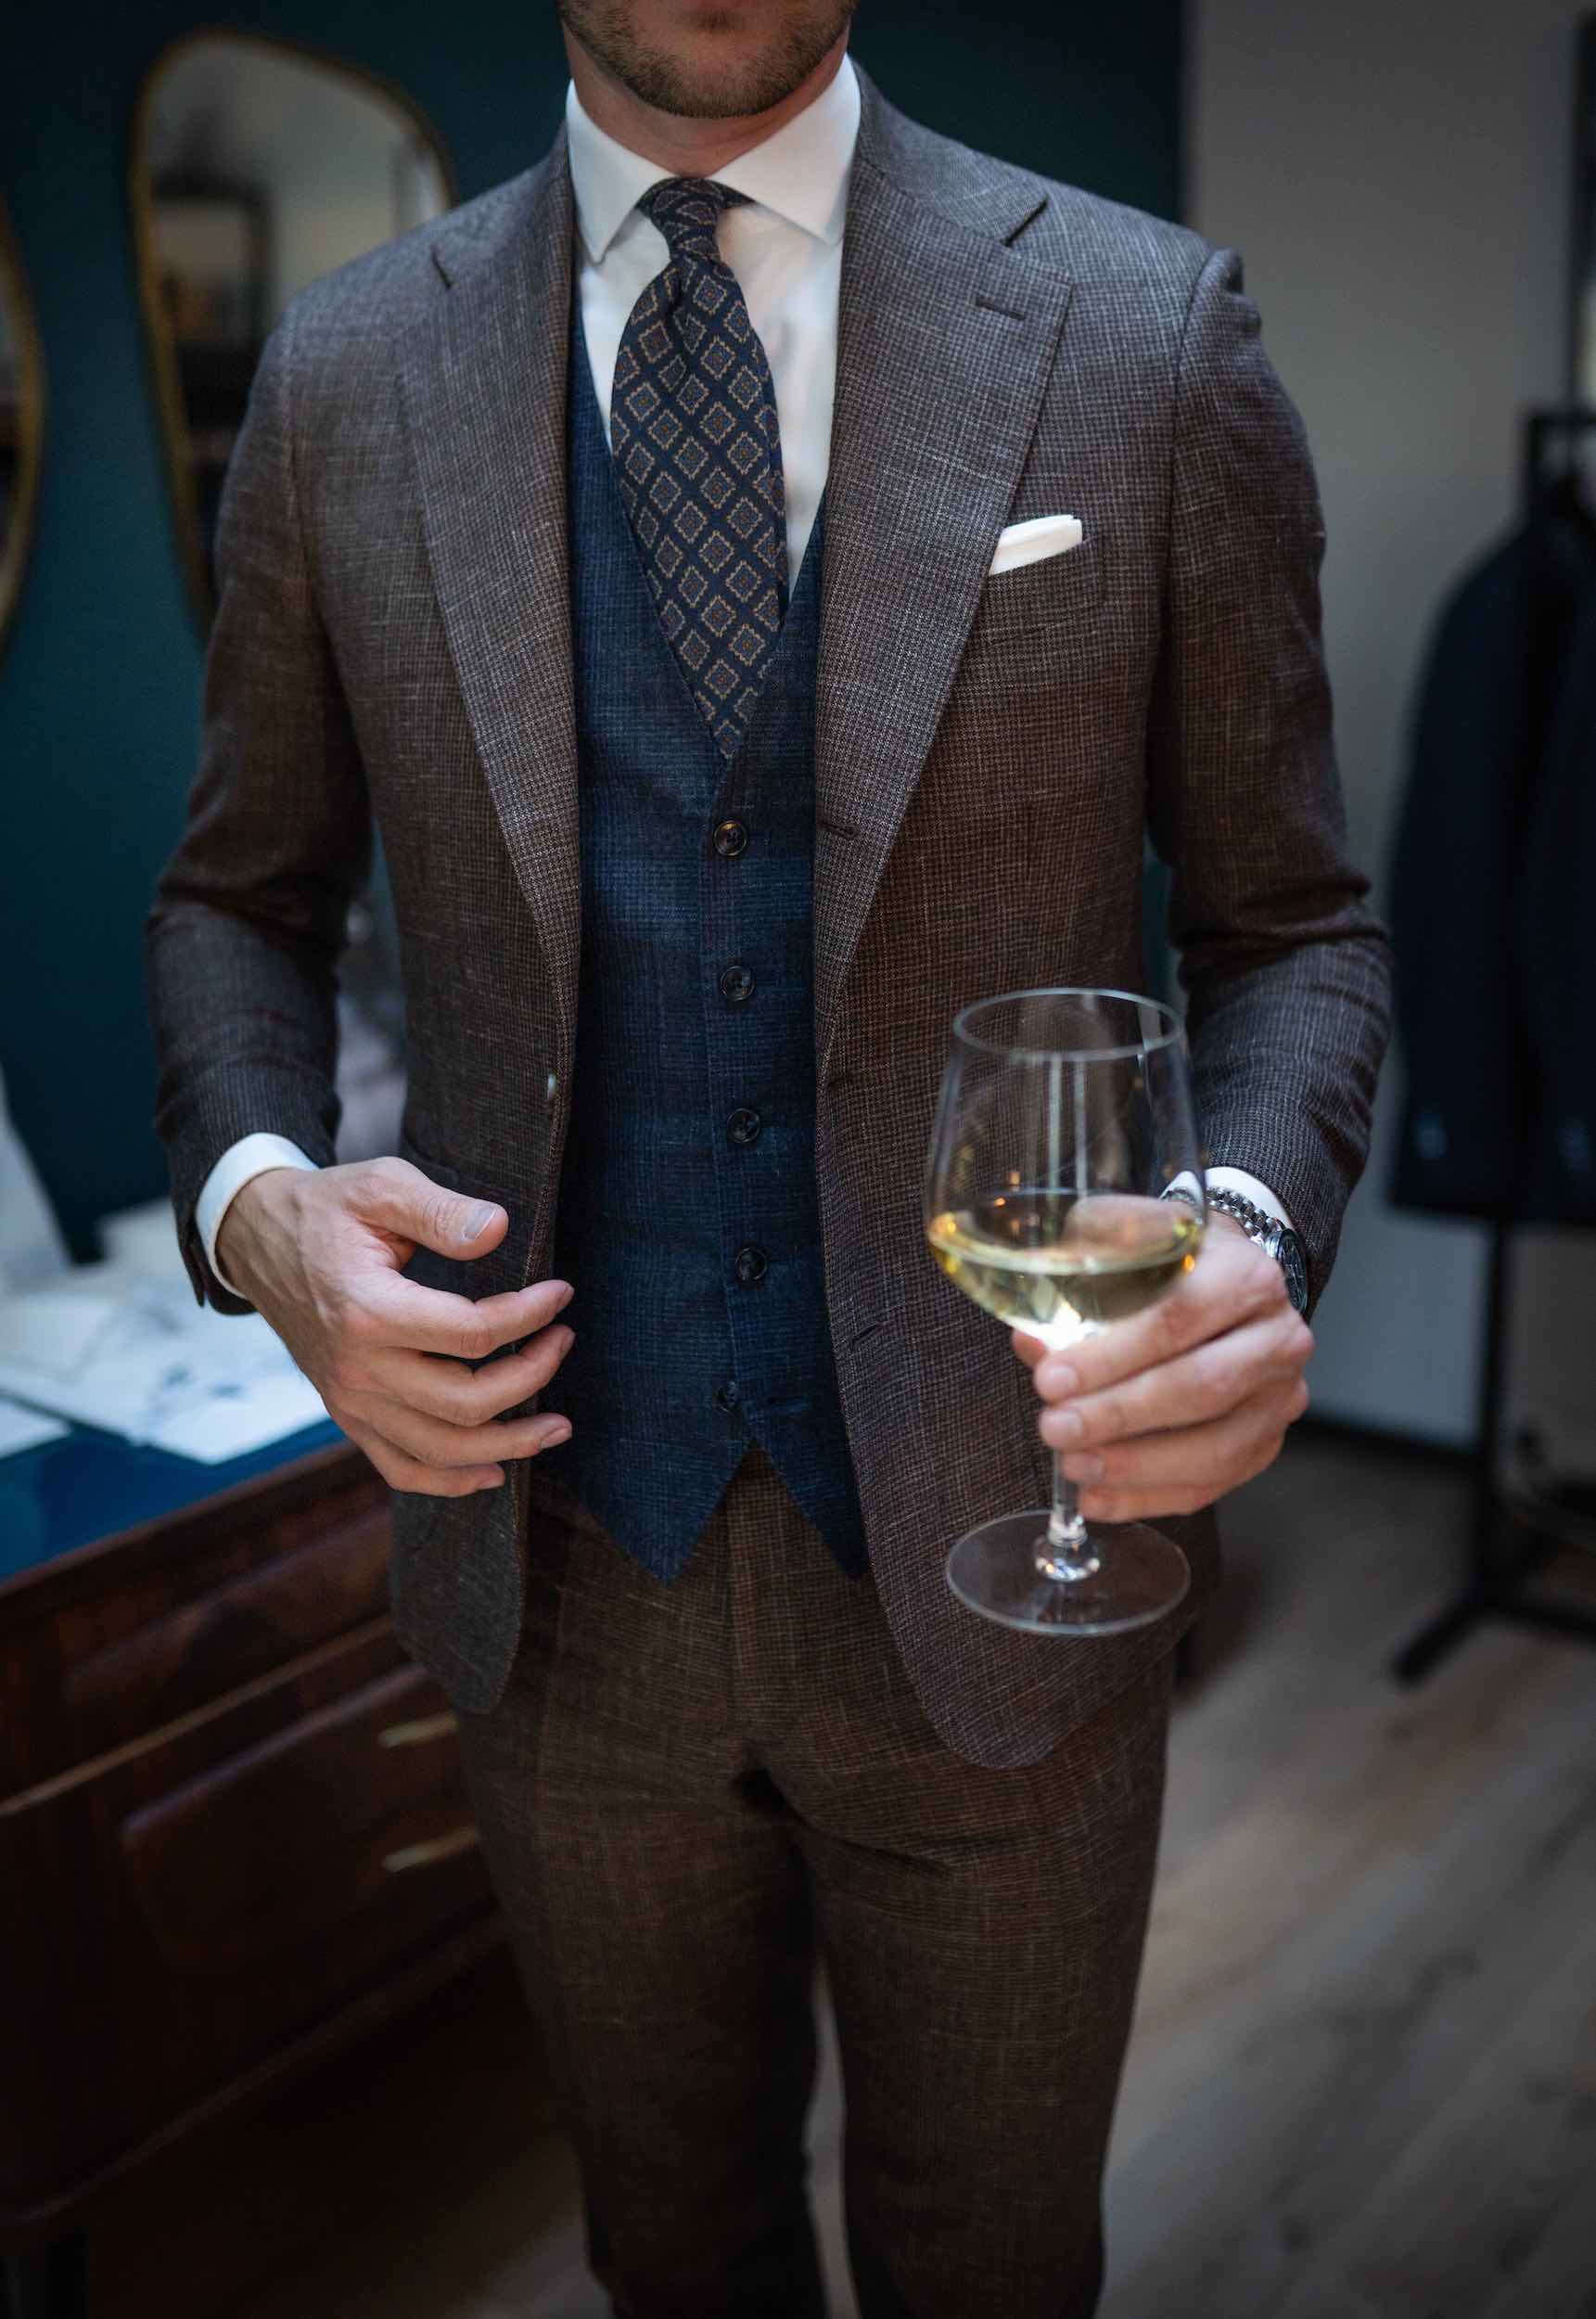 Man with suit and glass of champagne at Dalbiondo's show-room